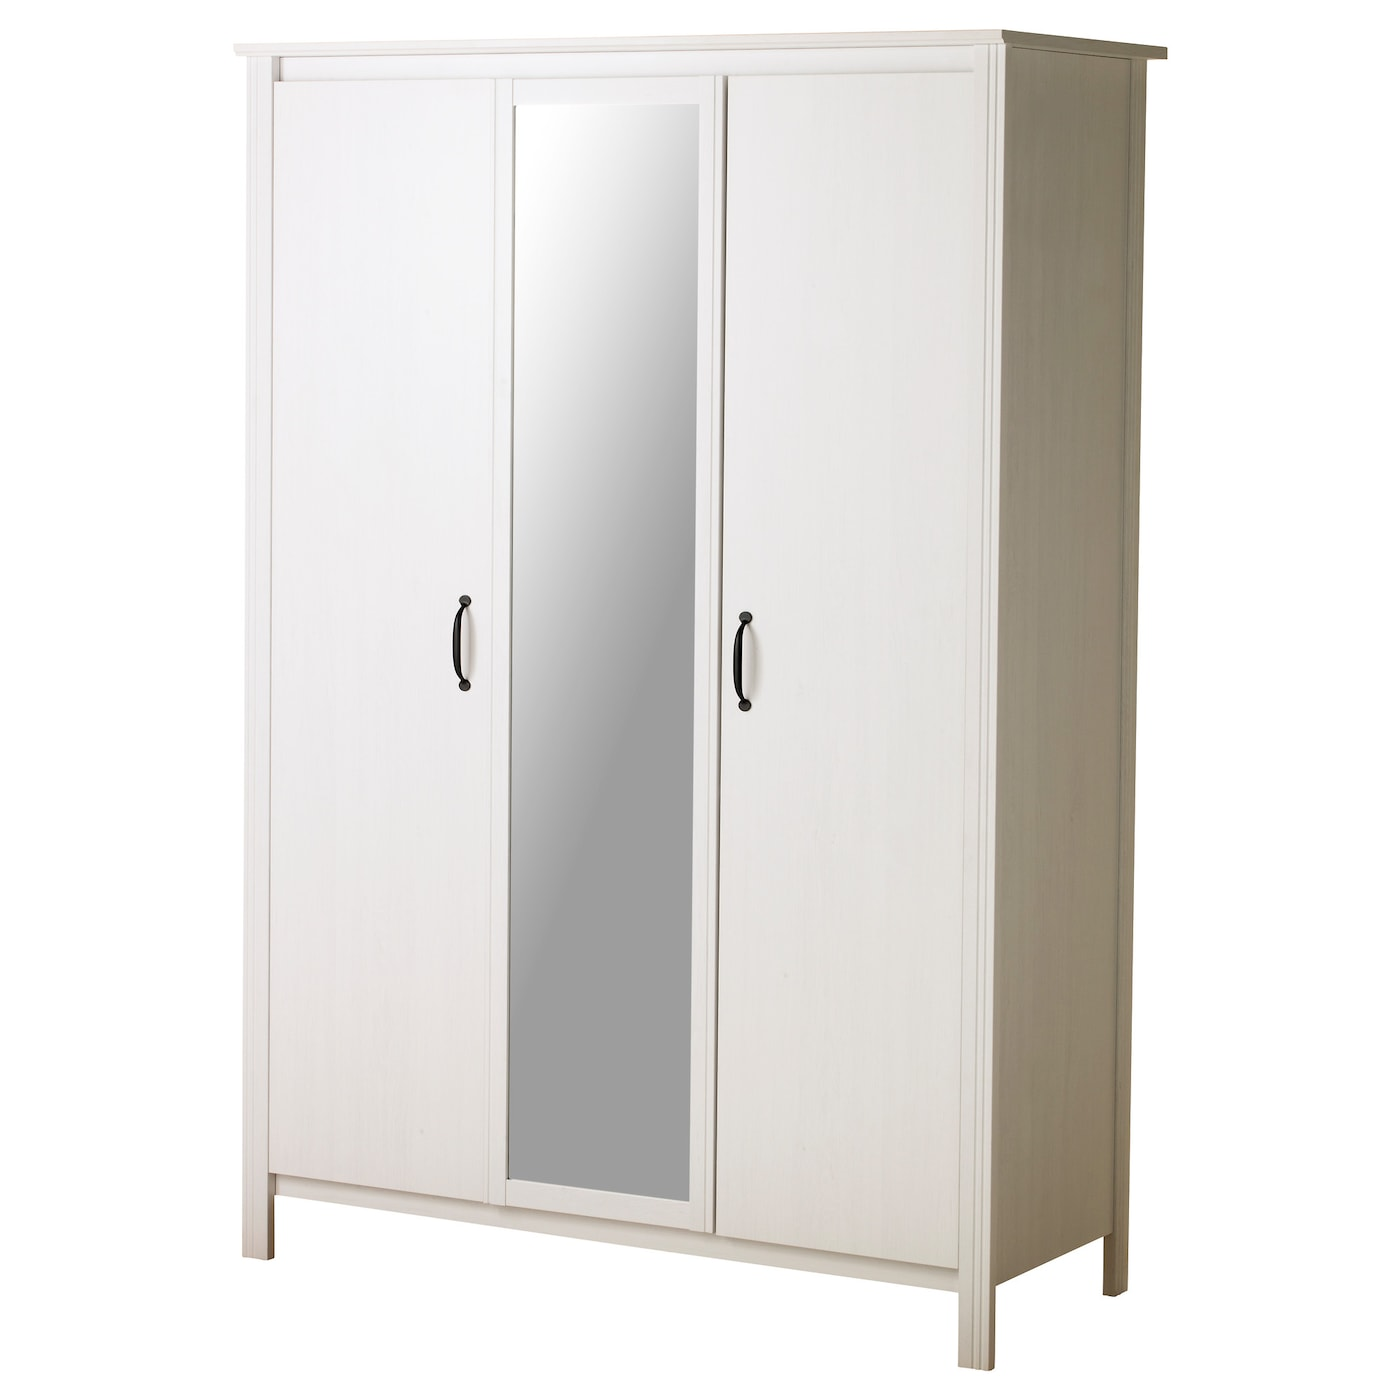 Brusali wardrobe with 3 doors white 131x190 cm ikea for Schrank 90 breit